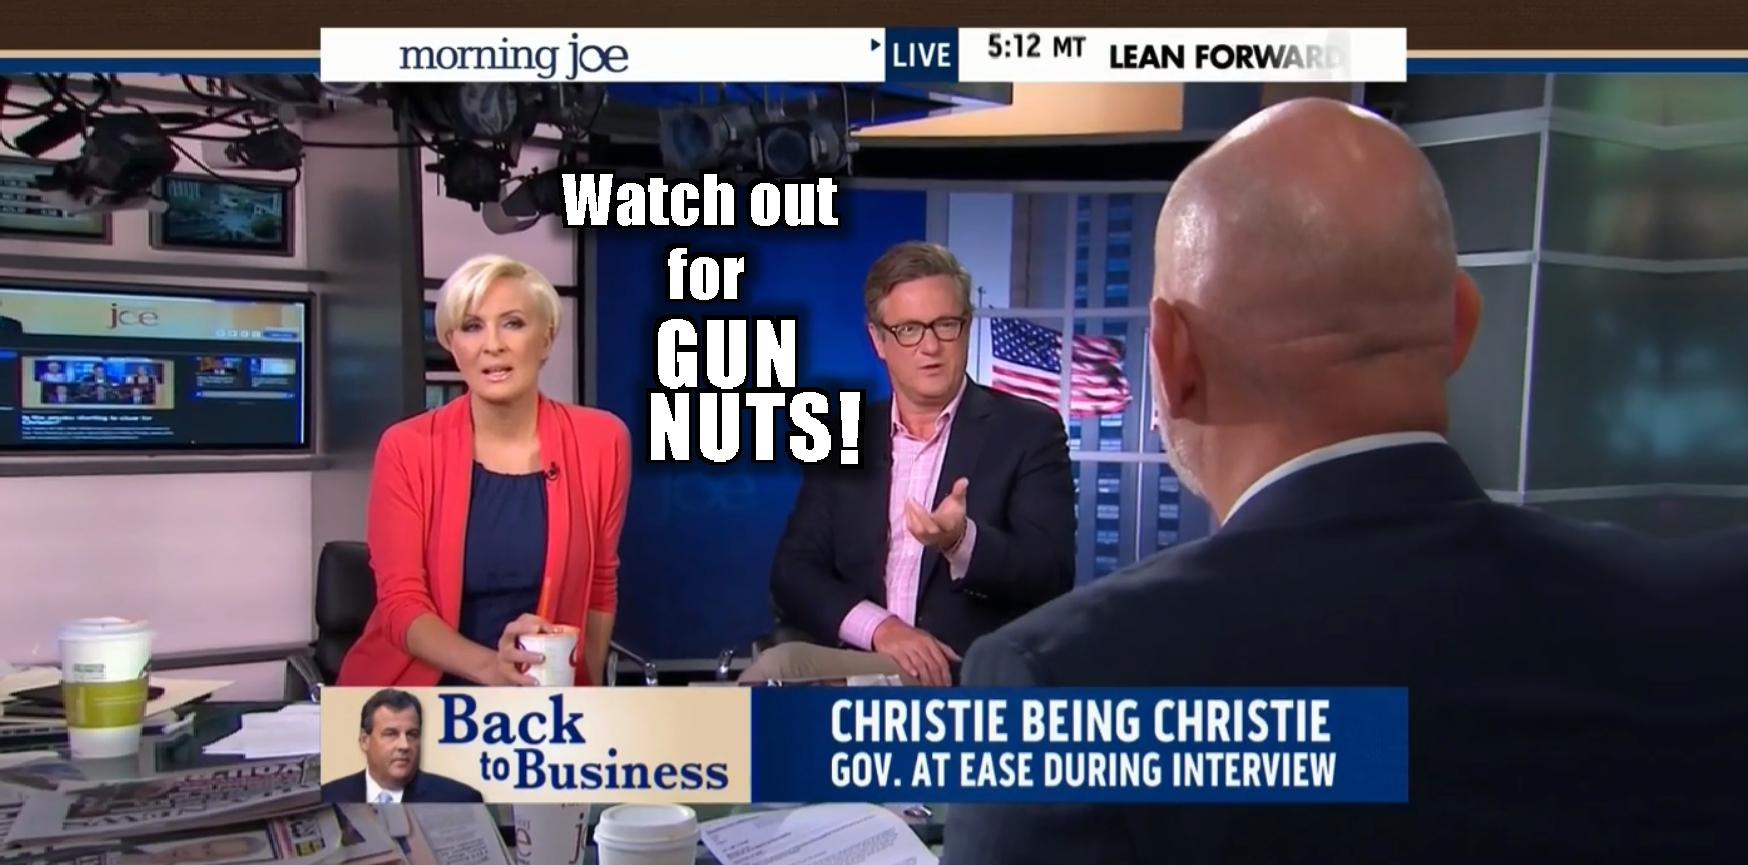 morning joe-gun nuts